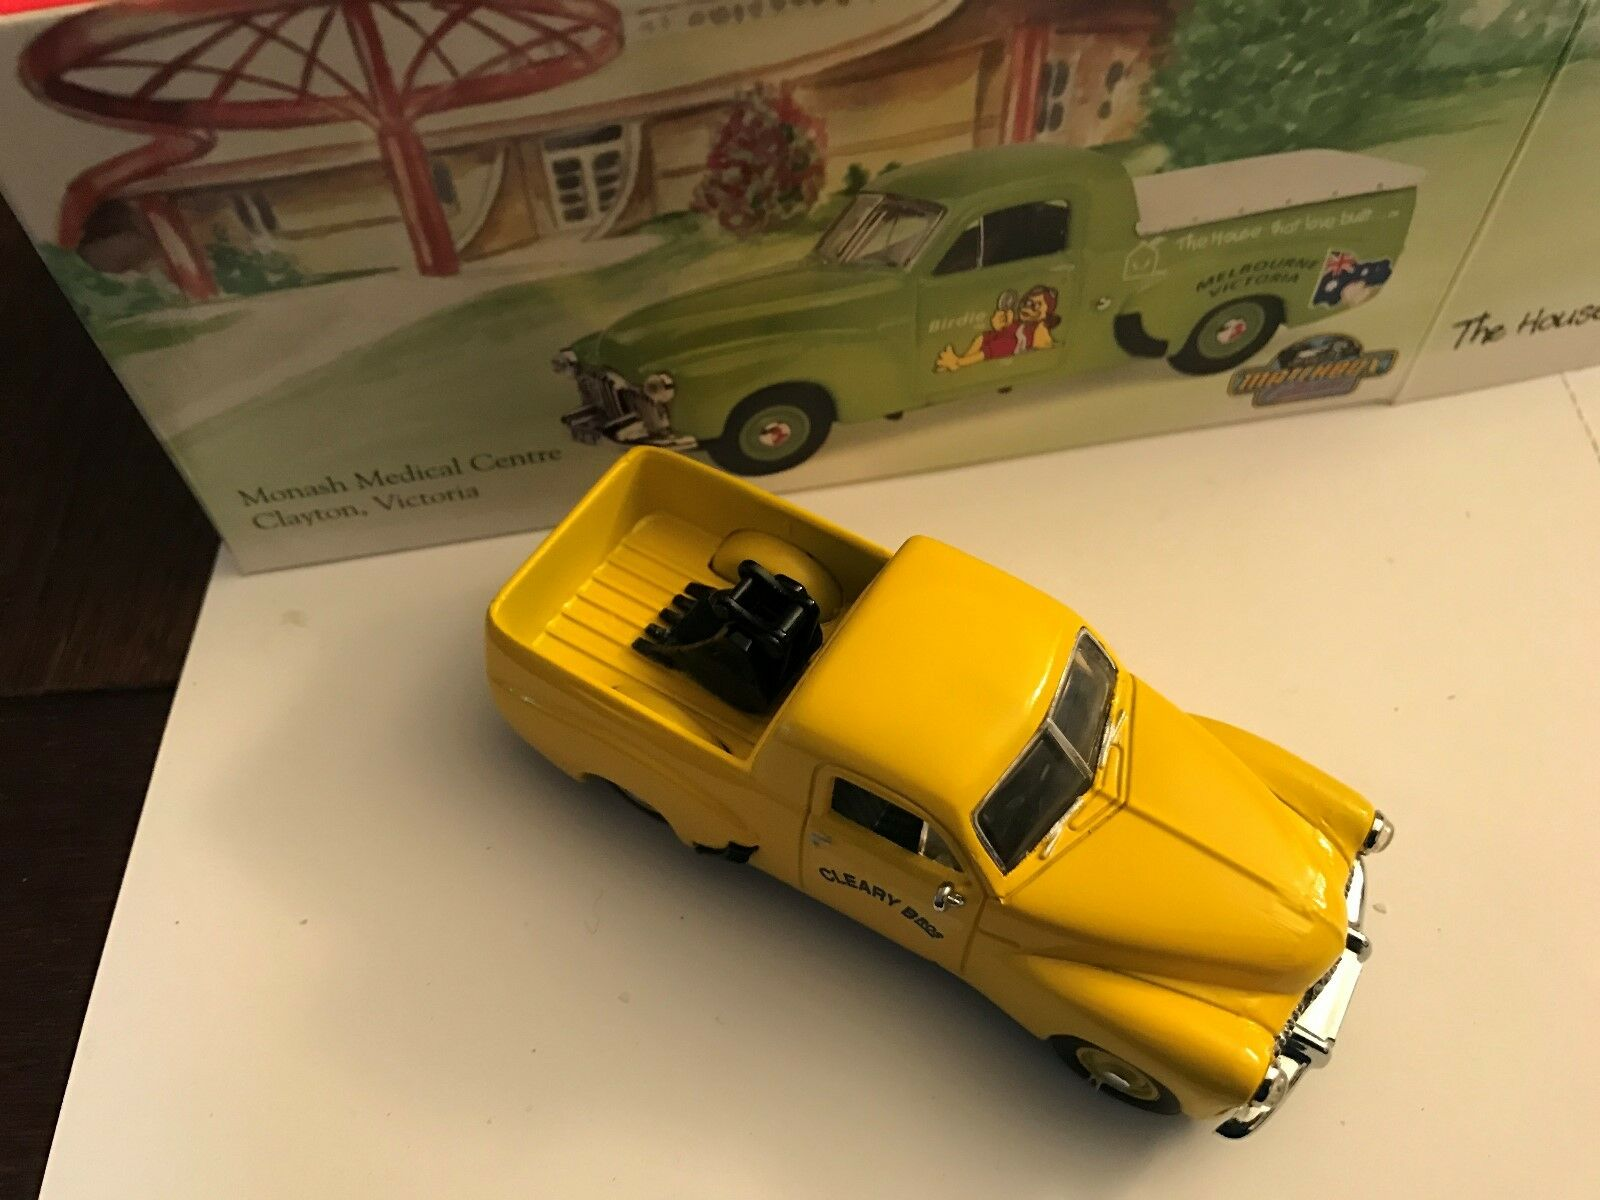 Rare, yhn-1 Holden  Cleary Bros  amarillo, Matchbox, moy, código 2, with Box